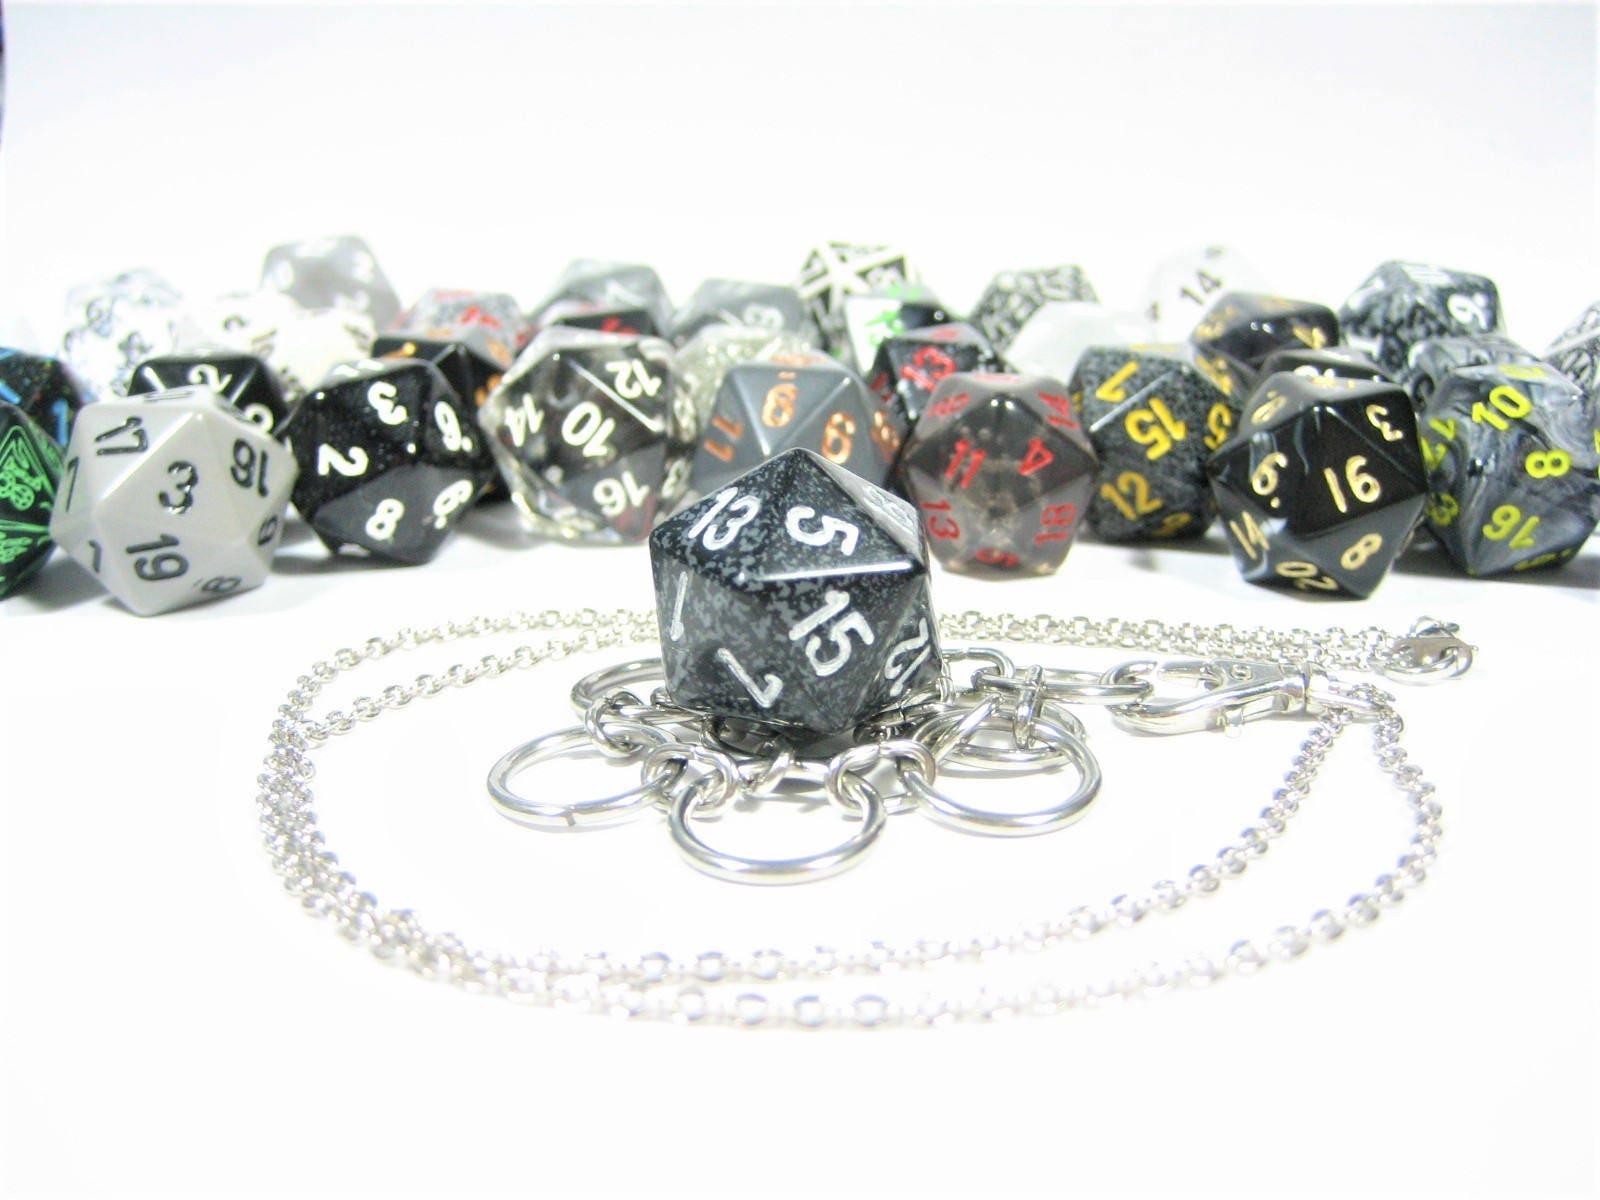 how to make a custom large spin down dice